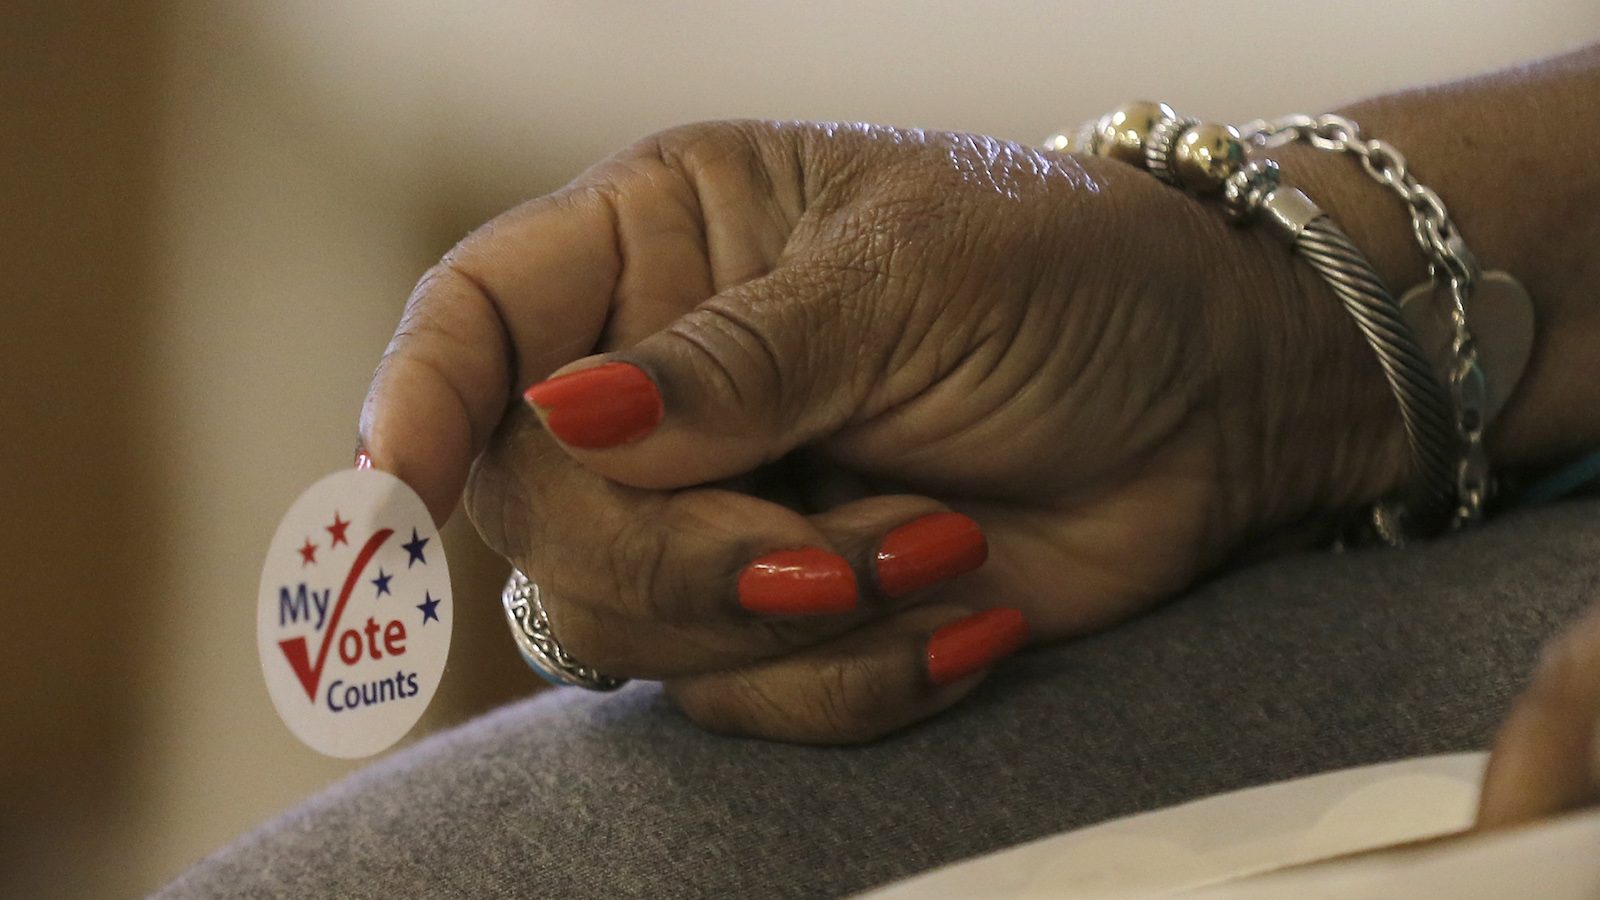 A worker holds stickers for voters at a polling station at the Princeton Baptist Church during the U.S. presidential election, in Princeton, North Carolina, U.S. November 8, 2016. REUTERS/Chris Keane - RTX2SLJ6